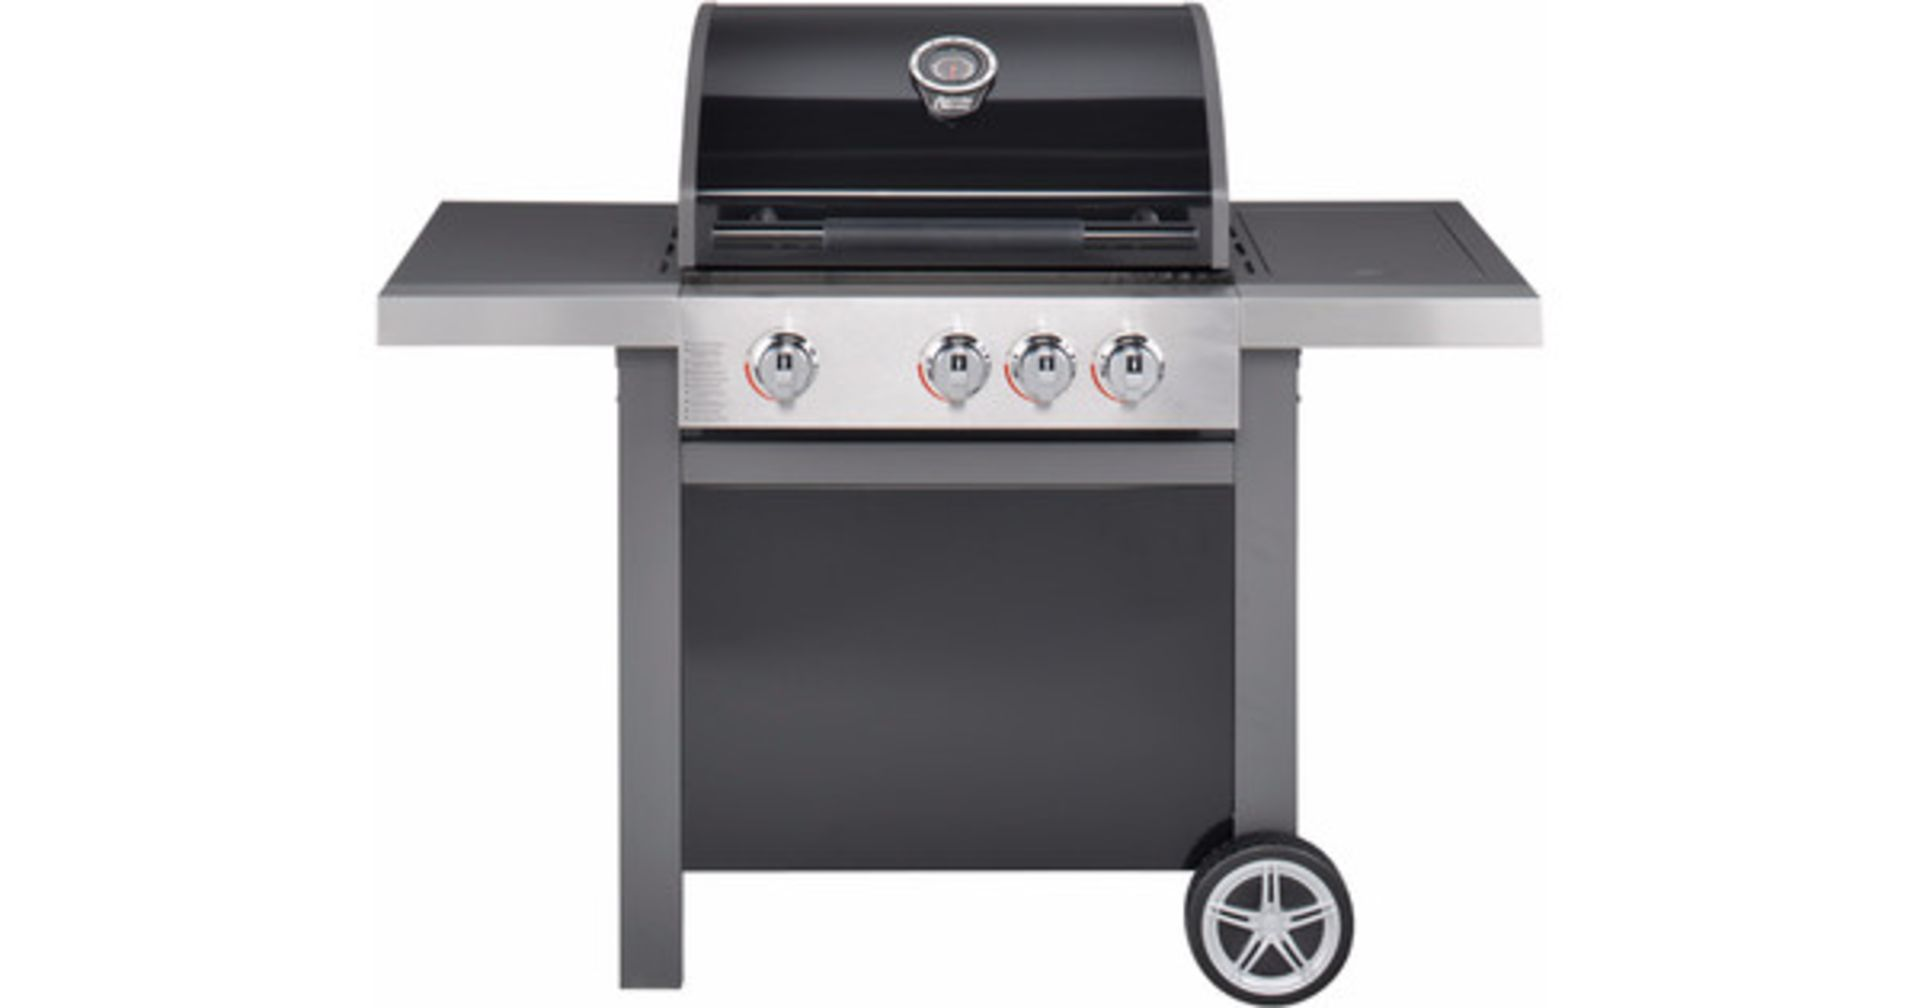 Lot 15025 - + VAT Brand New Jamie Oliver Home 3s Barbecue - Three Burners With Cast Iron Grills - Includes Side